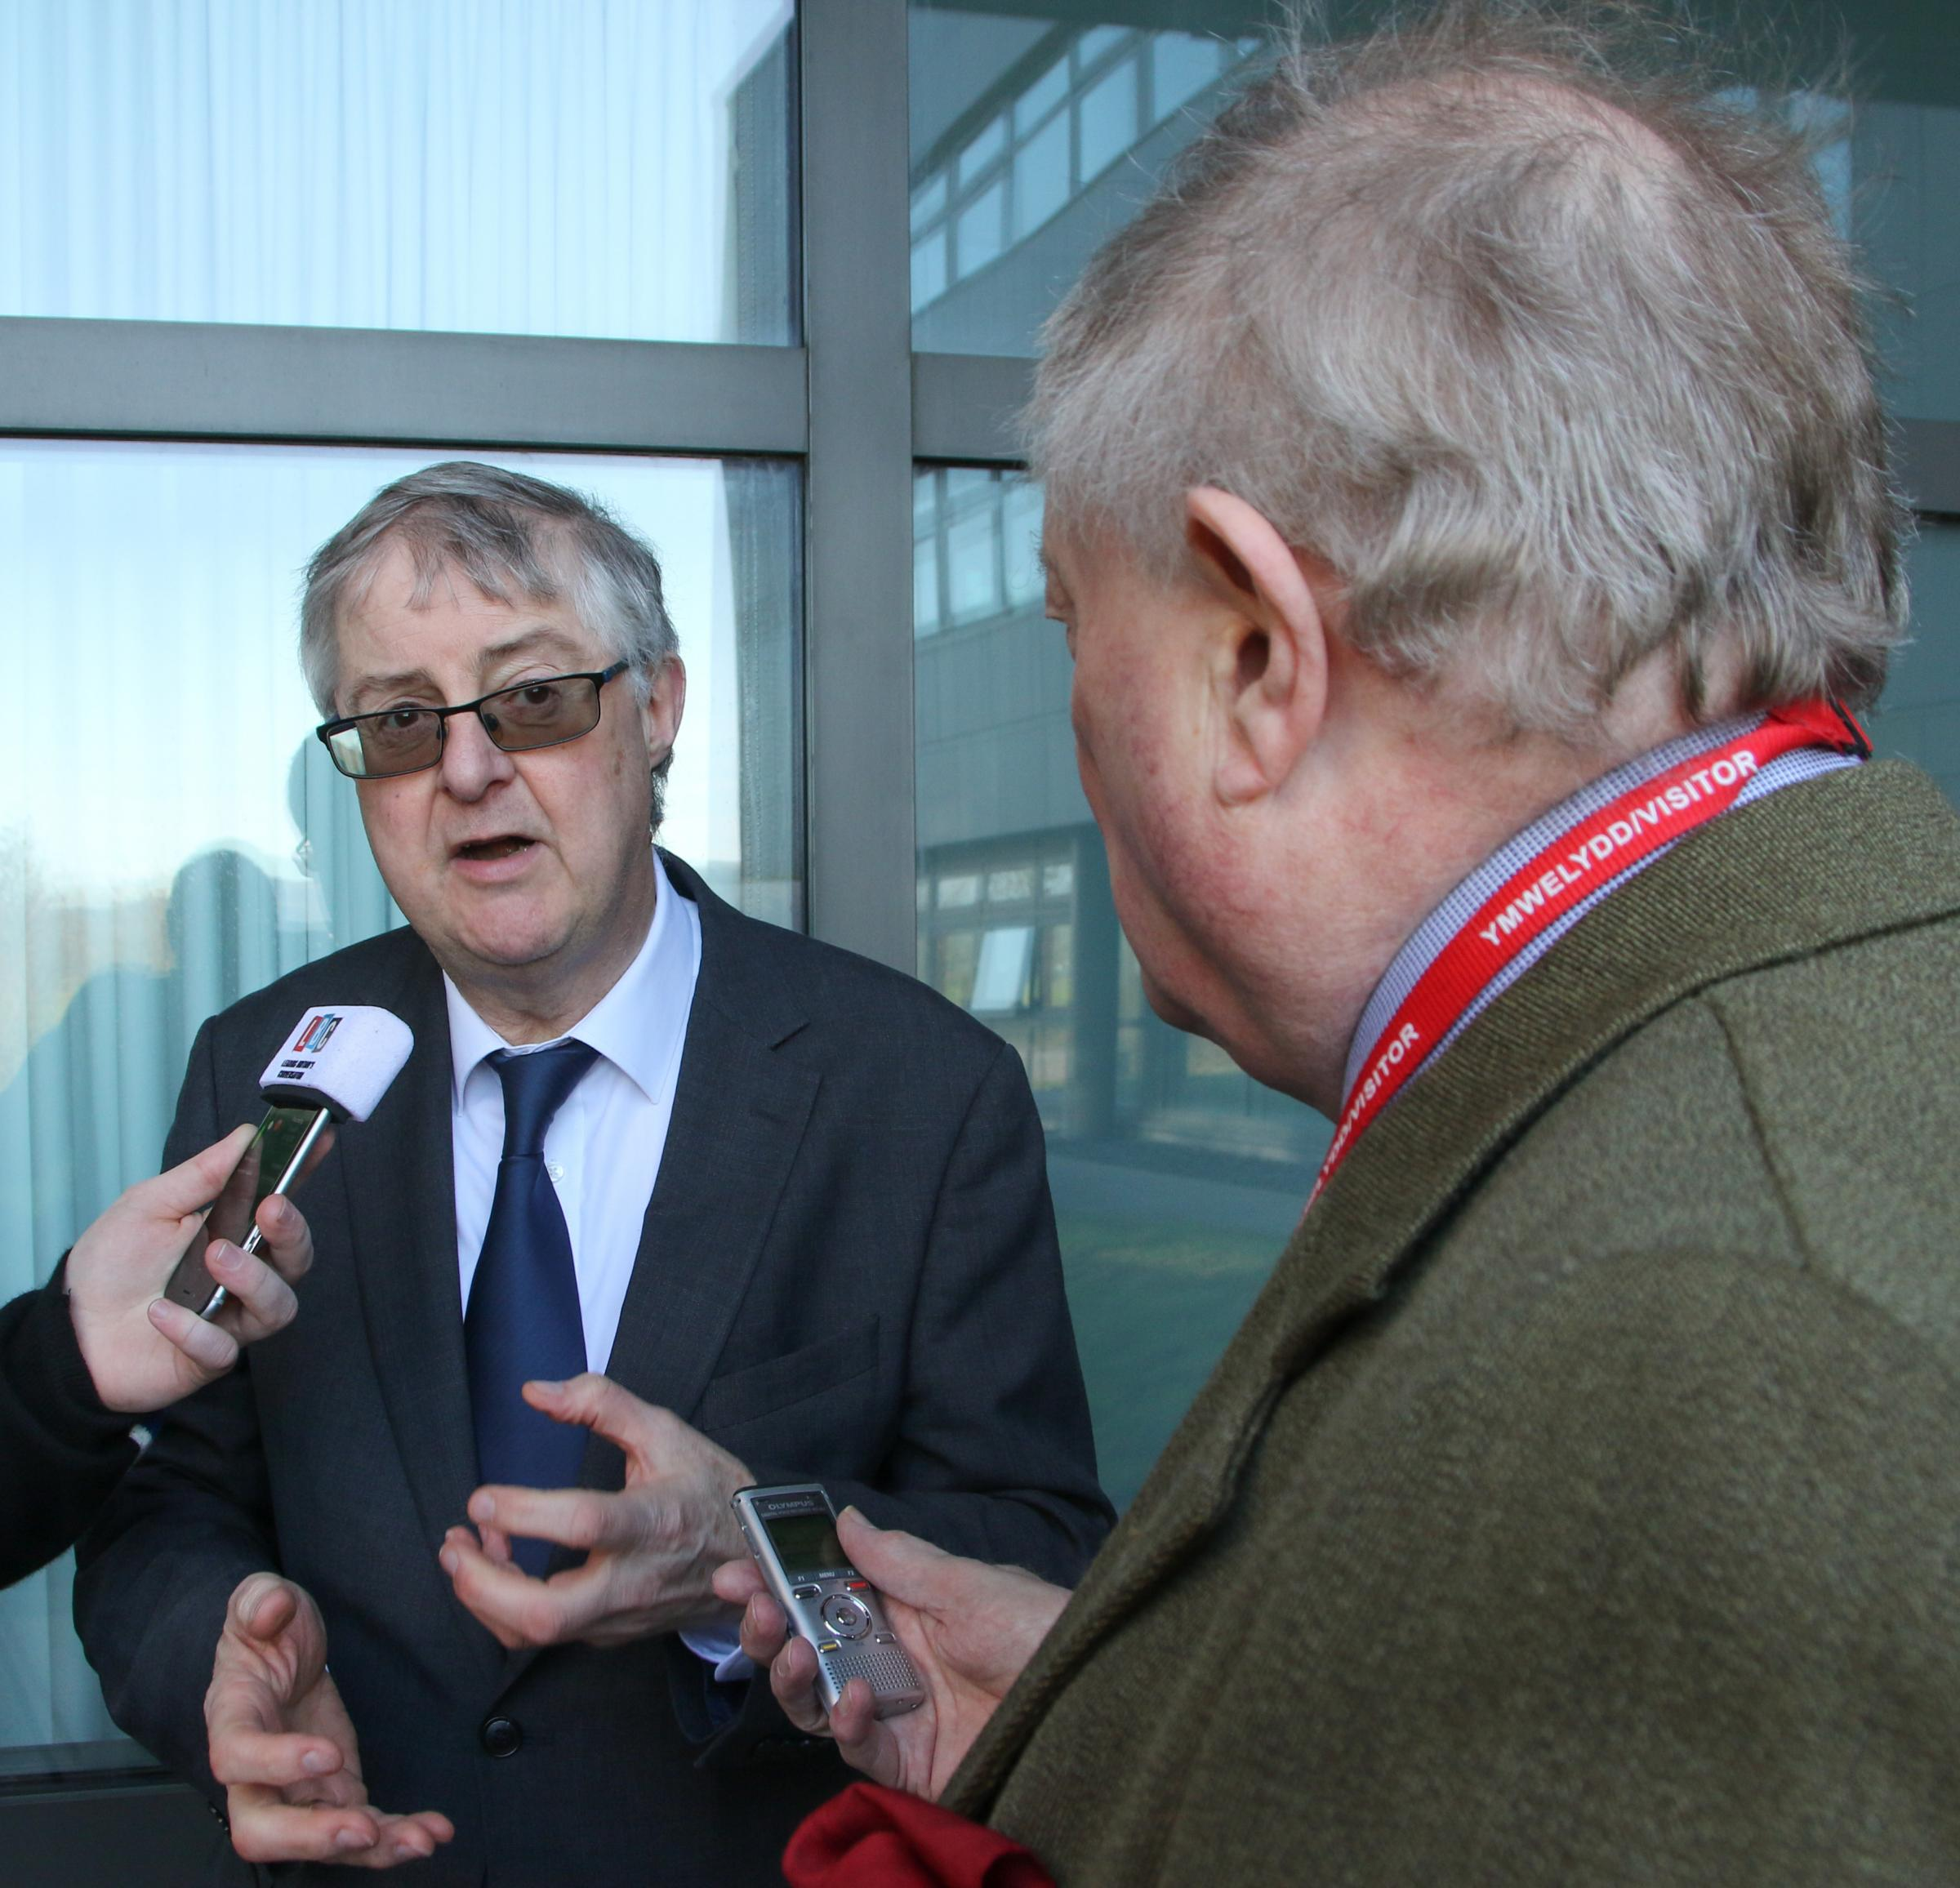 Mark Drakeford being interviewed prior to the cabinet meeting. Picture: Kerry Roberts